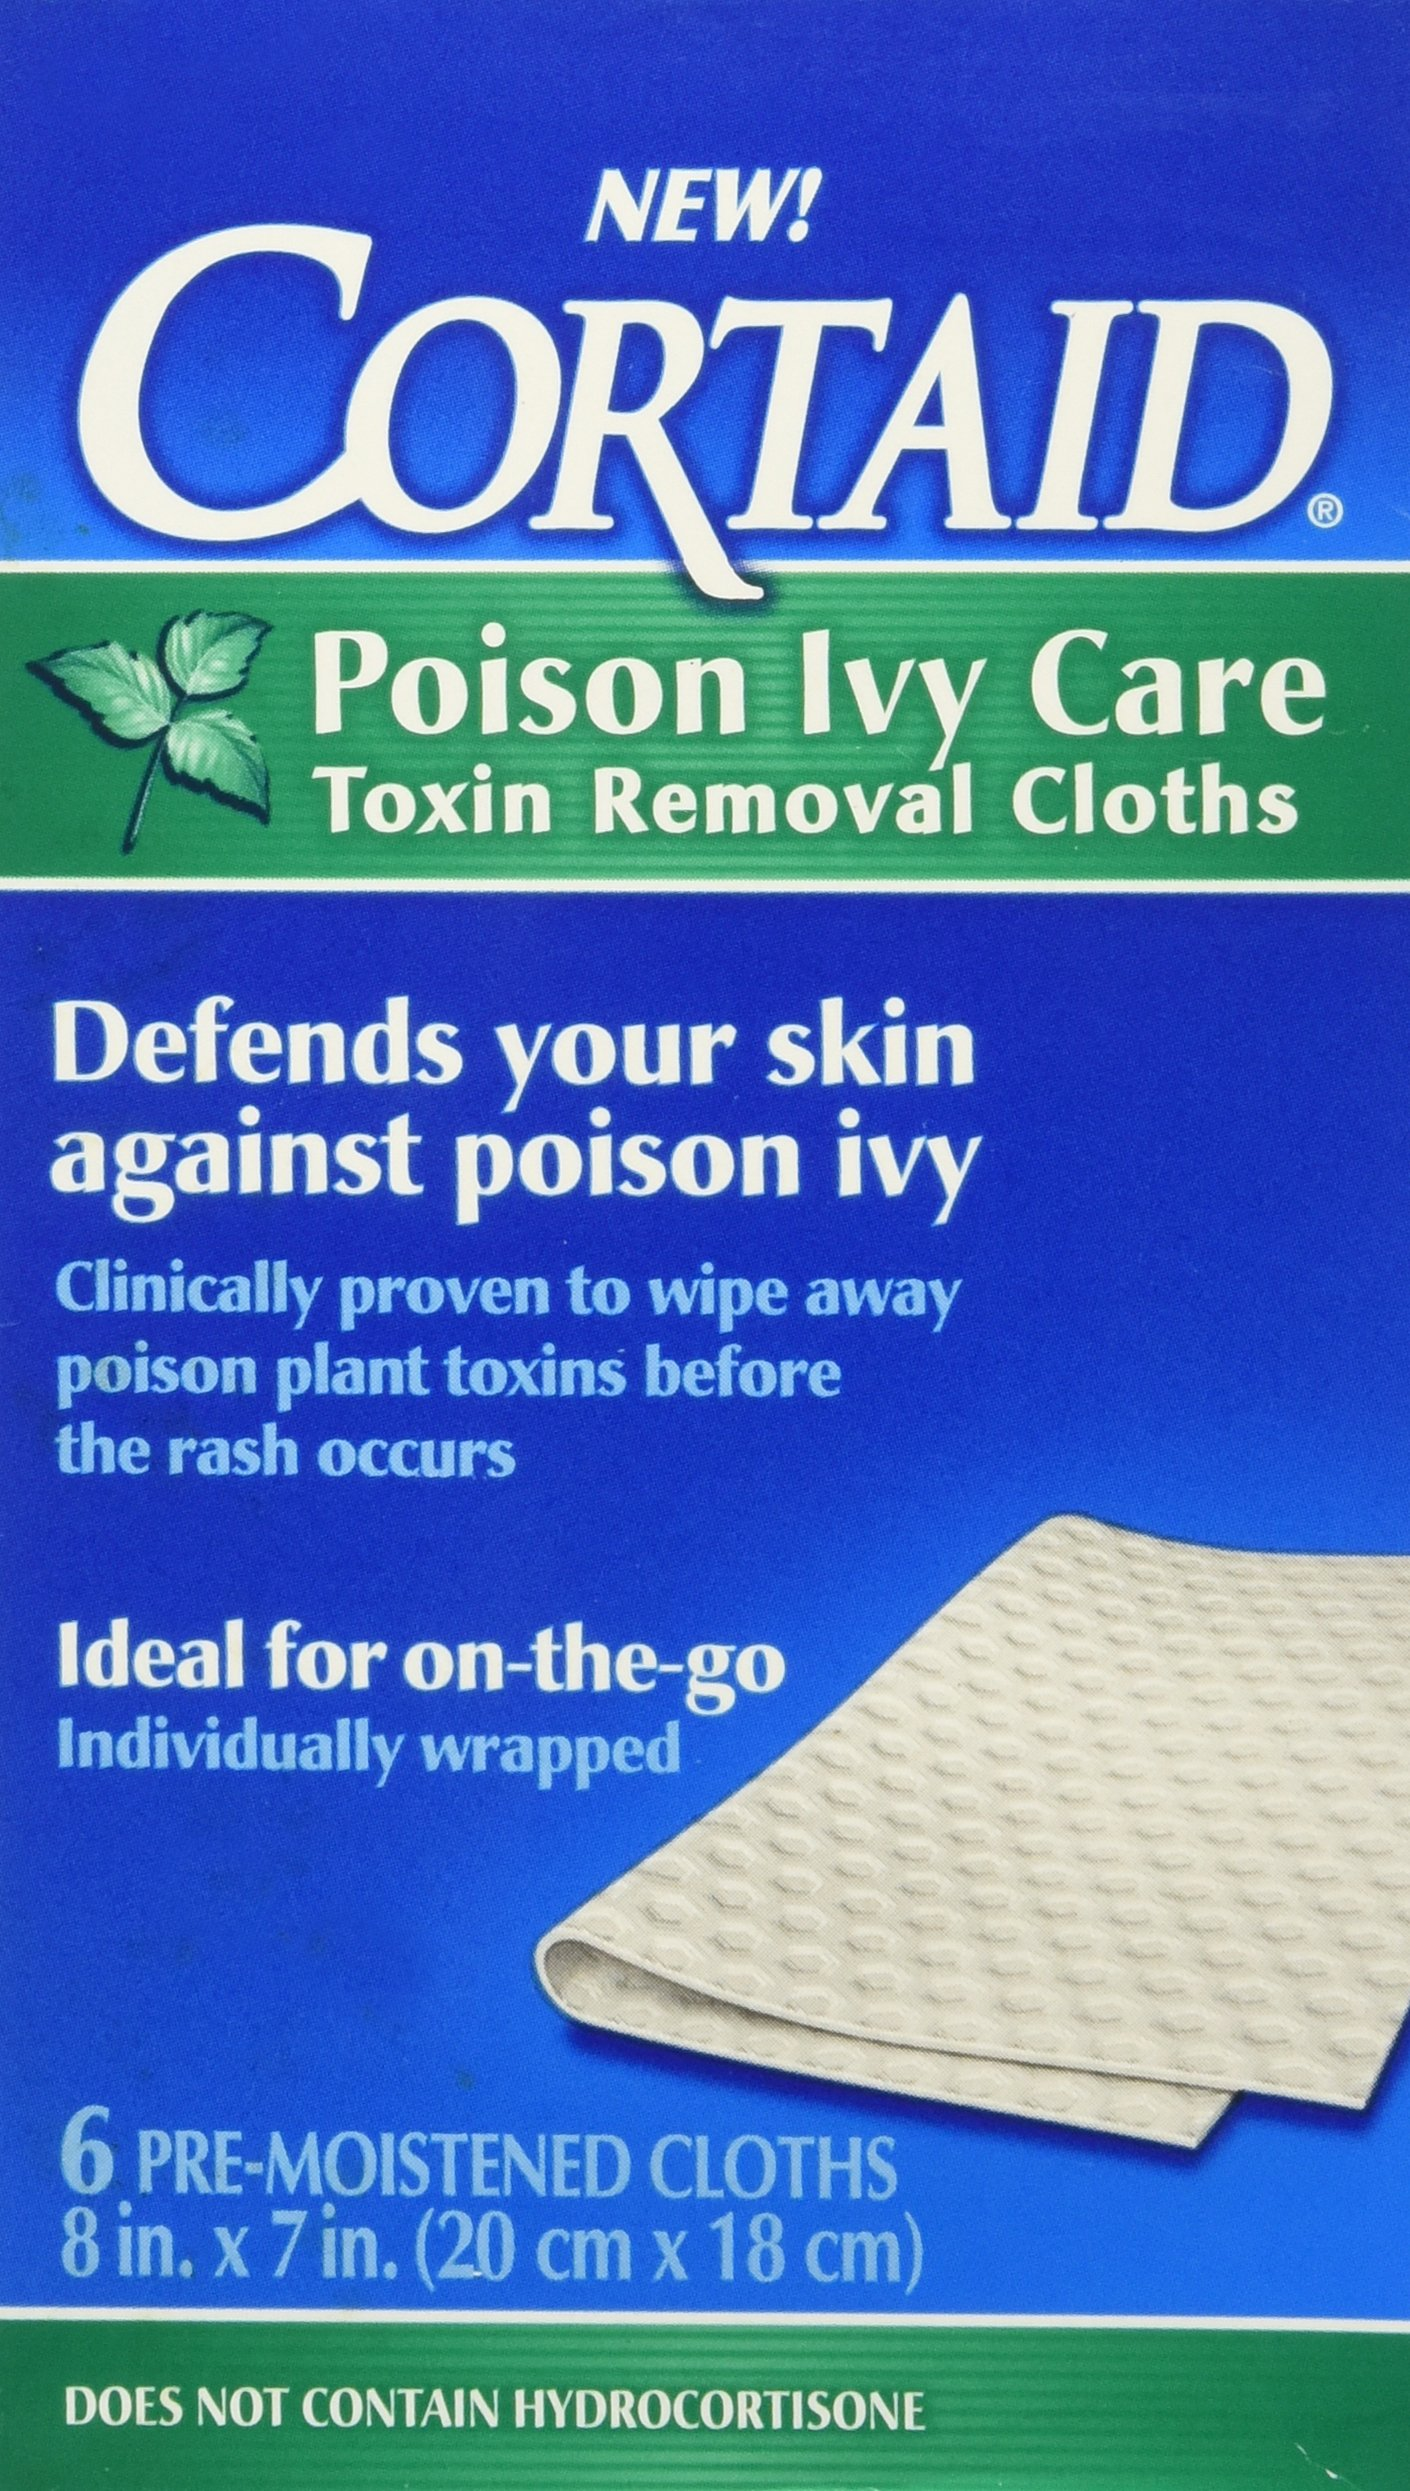 Cortaid Poison Ivy Care Toxin Removal Cloths 6 ea by J&J HEALTHCARE.